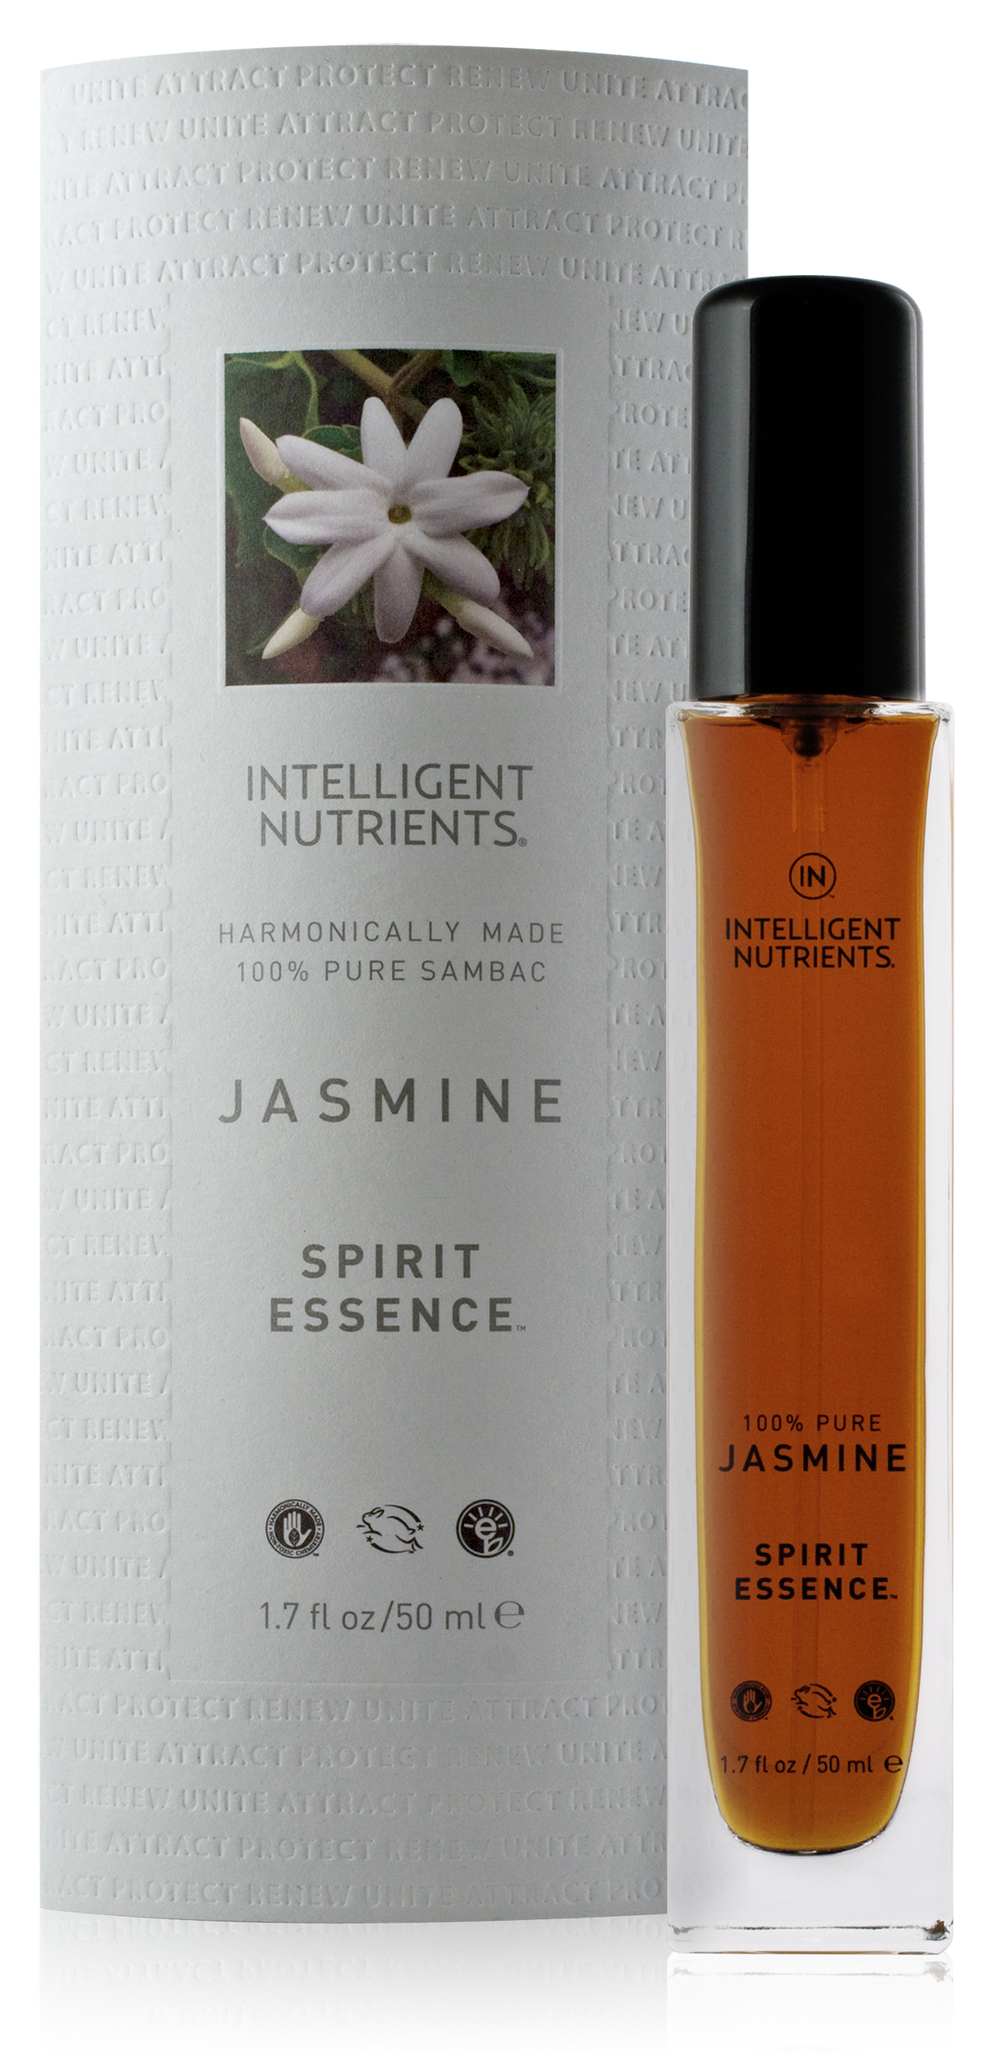 Jasmine Spirit Essence (DKK755/50ml)